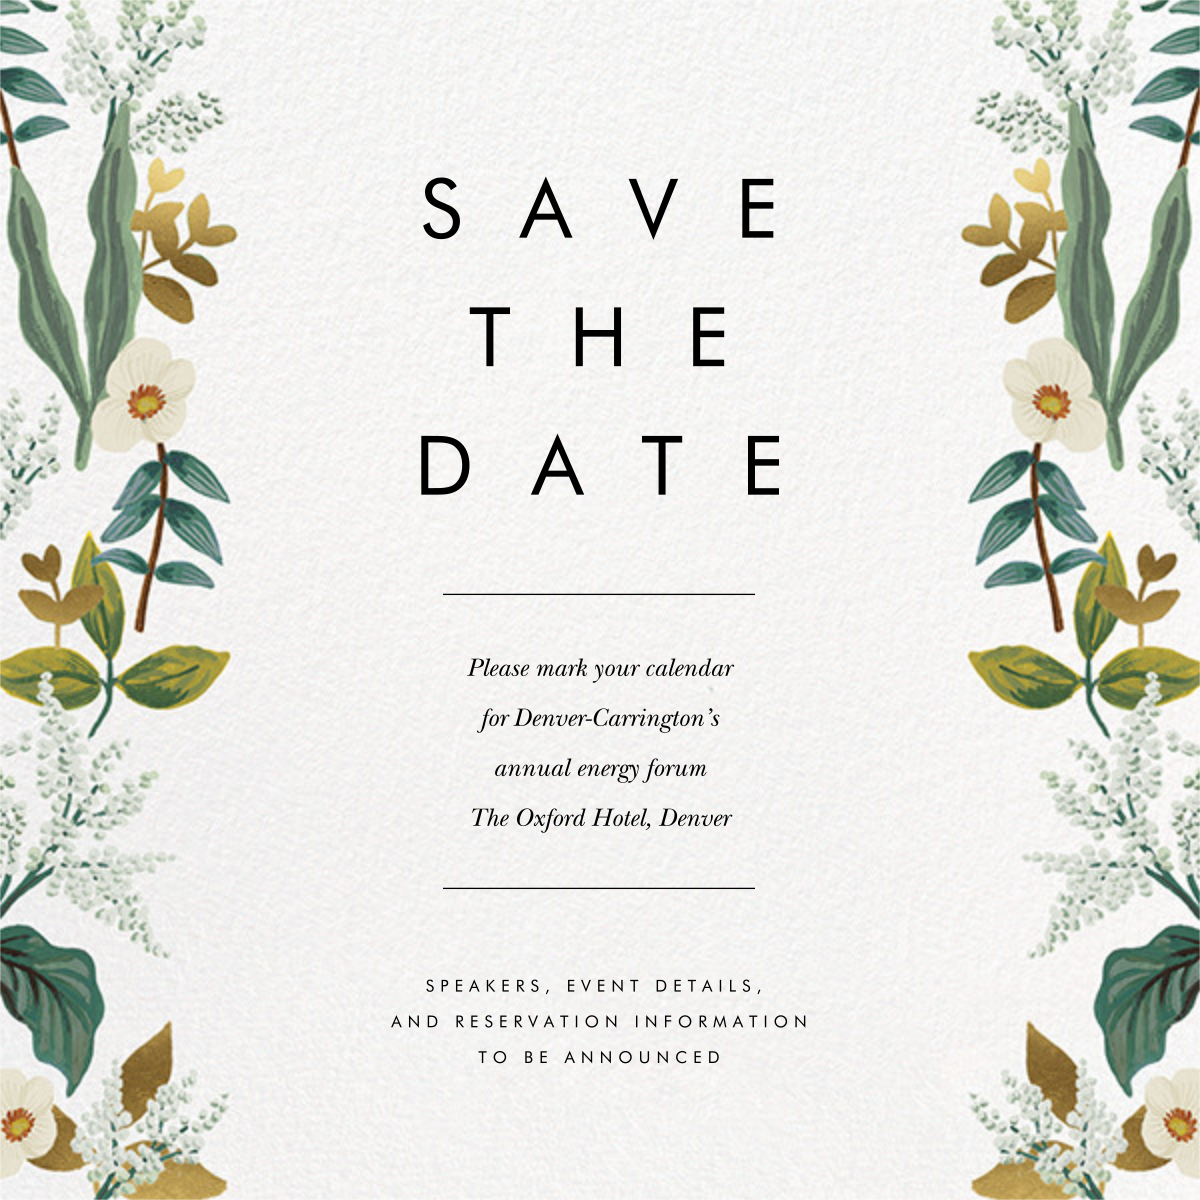 Meadow Garland (Square) - Rifle Paper Co. - Party save the dates